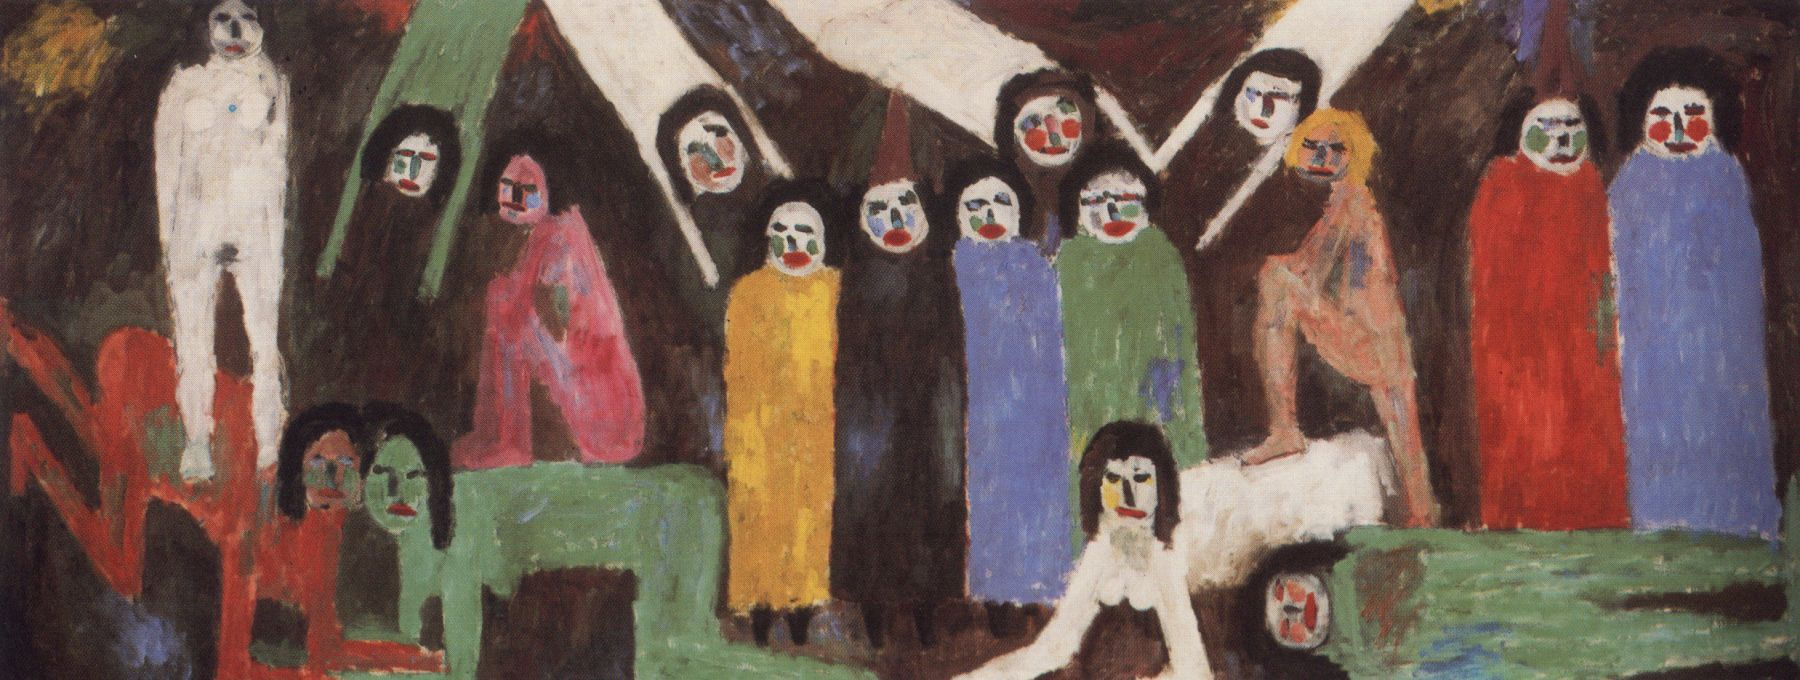 Jan Müller, The Concert of Angels, 1957, oil on canvas, 56 1/2 x 148 inches (cou